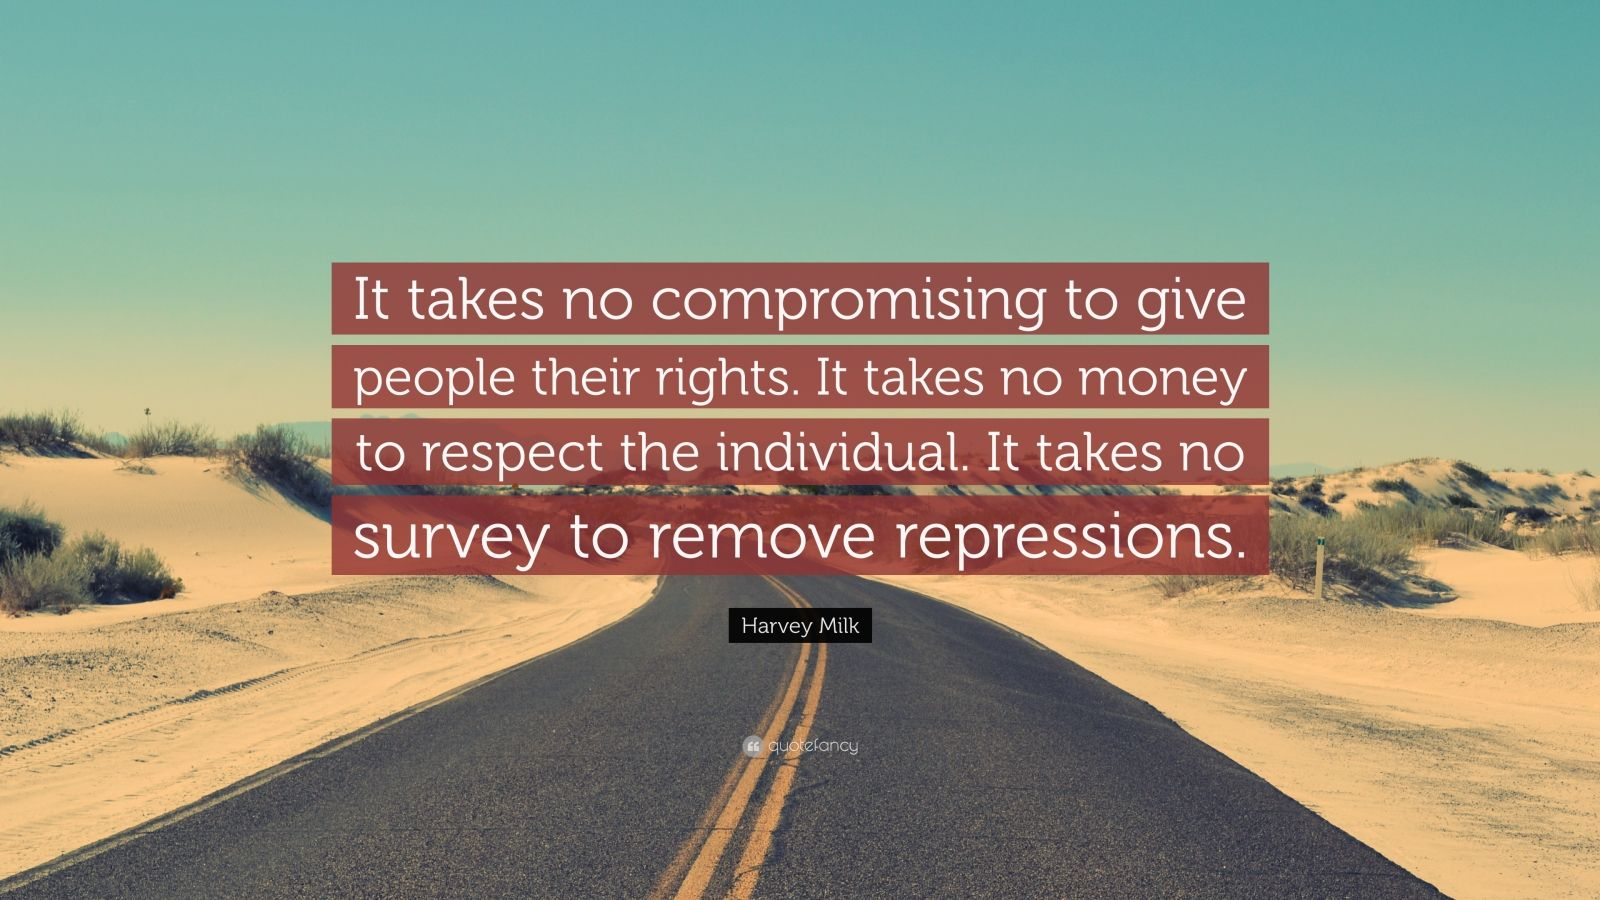 """Harvey Milk Quote: """"It takes no compromising to give people their rights. It takes no money to respect the individual. It takes no survey to remove repressions."""""""